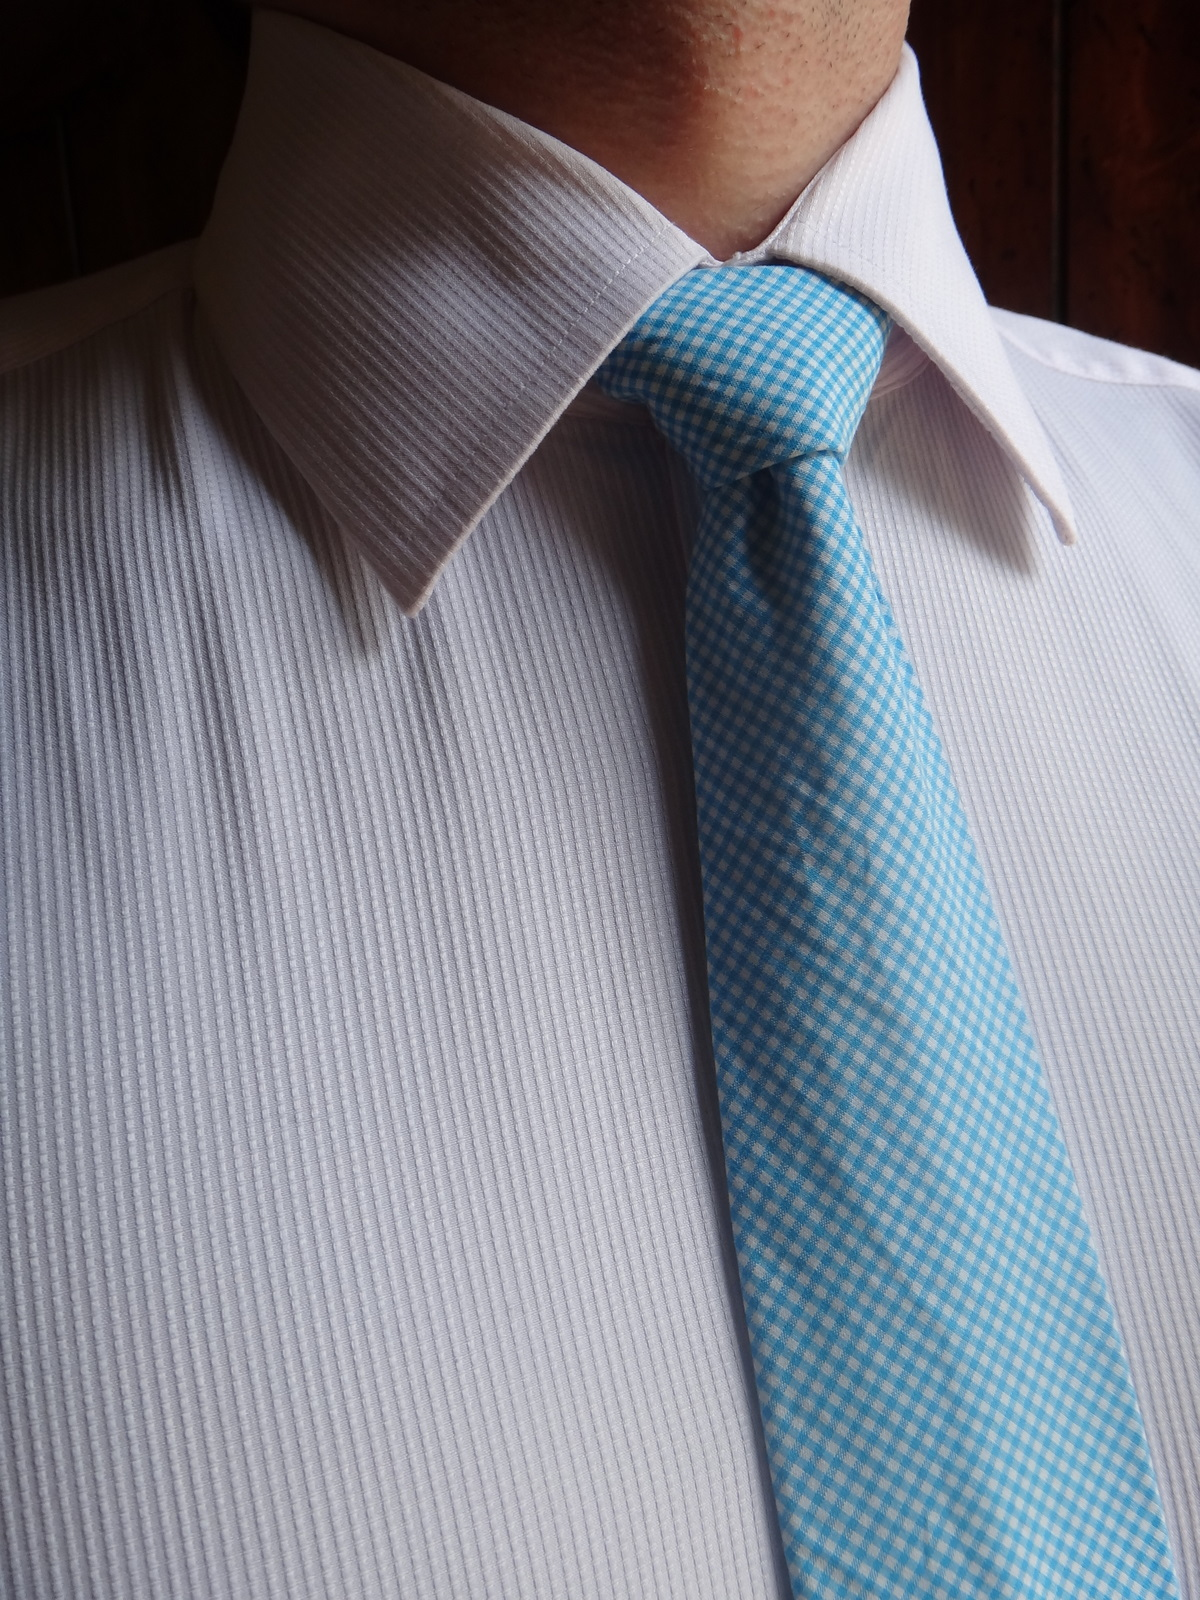 The Shy Stylist - a men's style blog: Reader Question ...